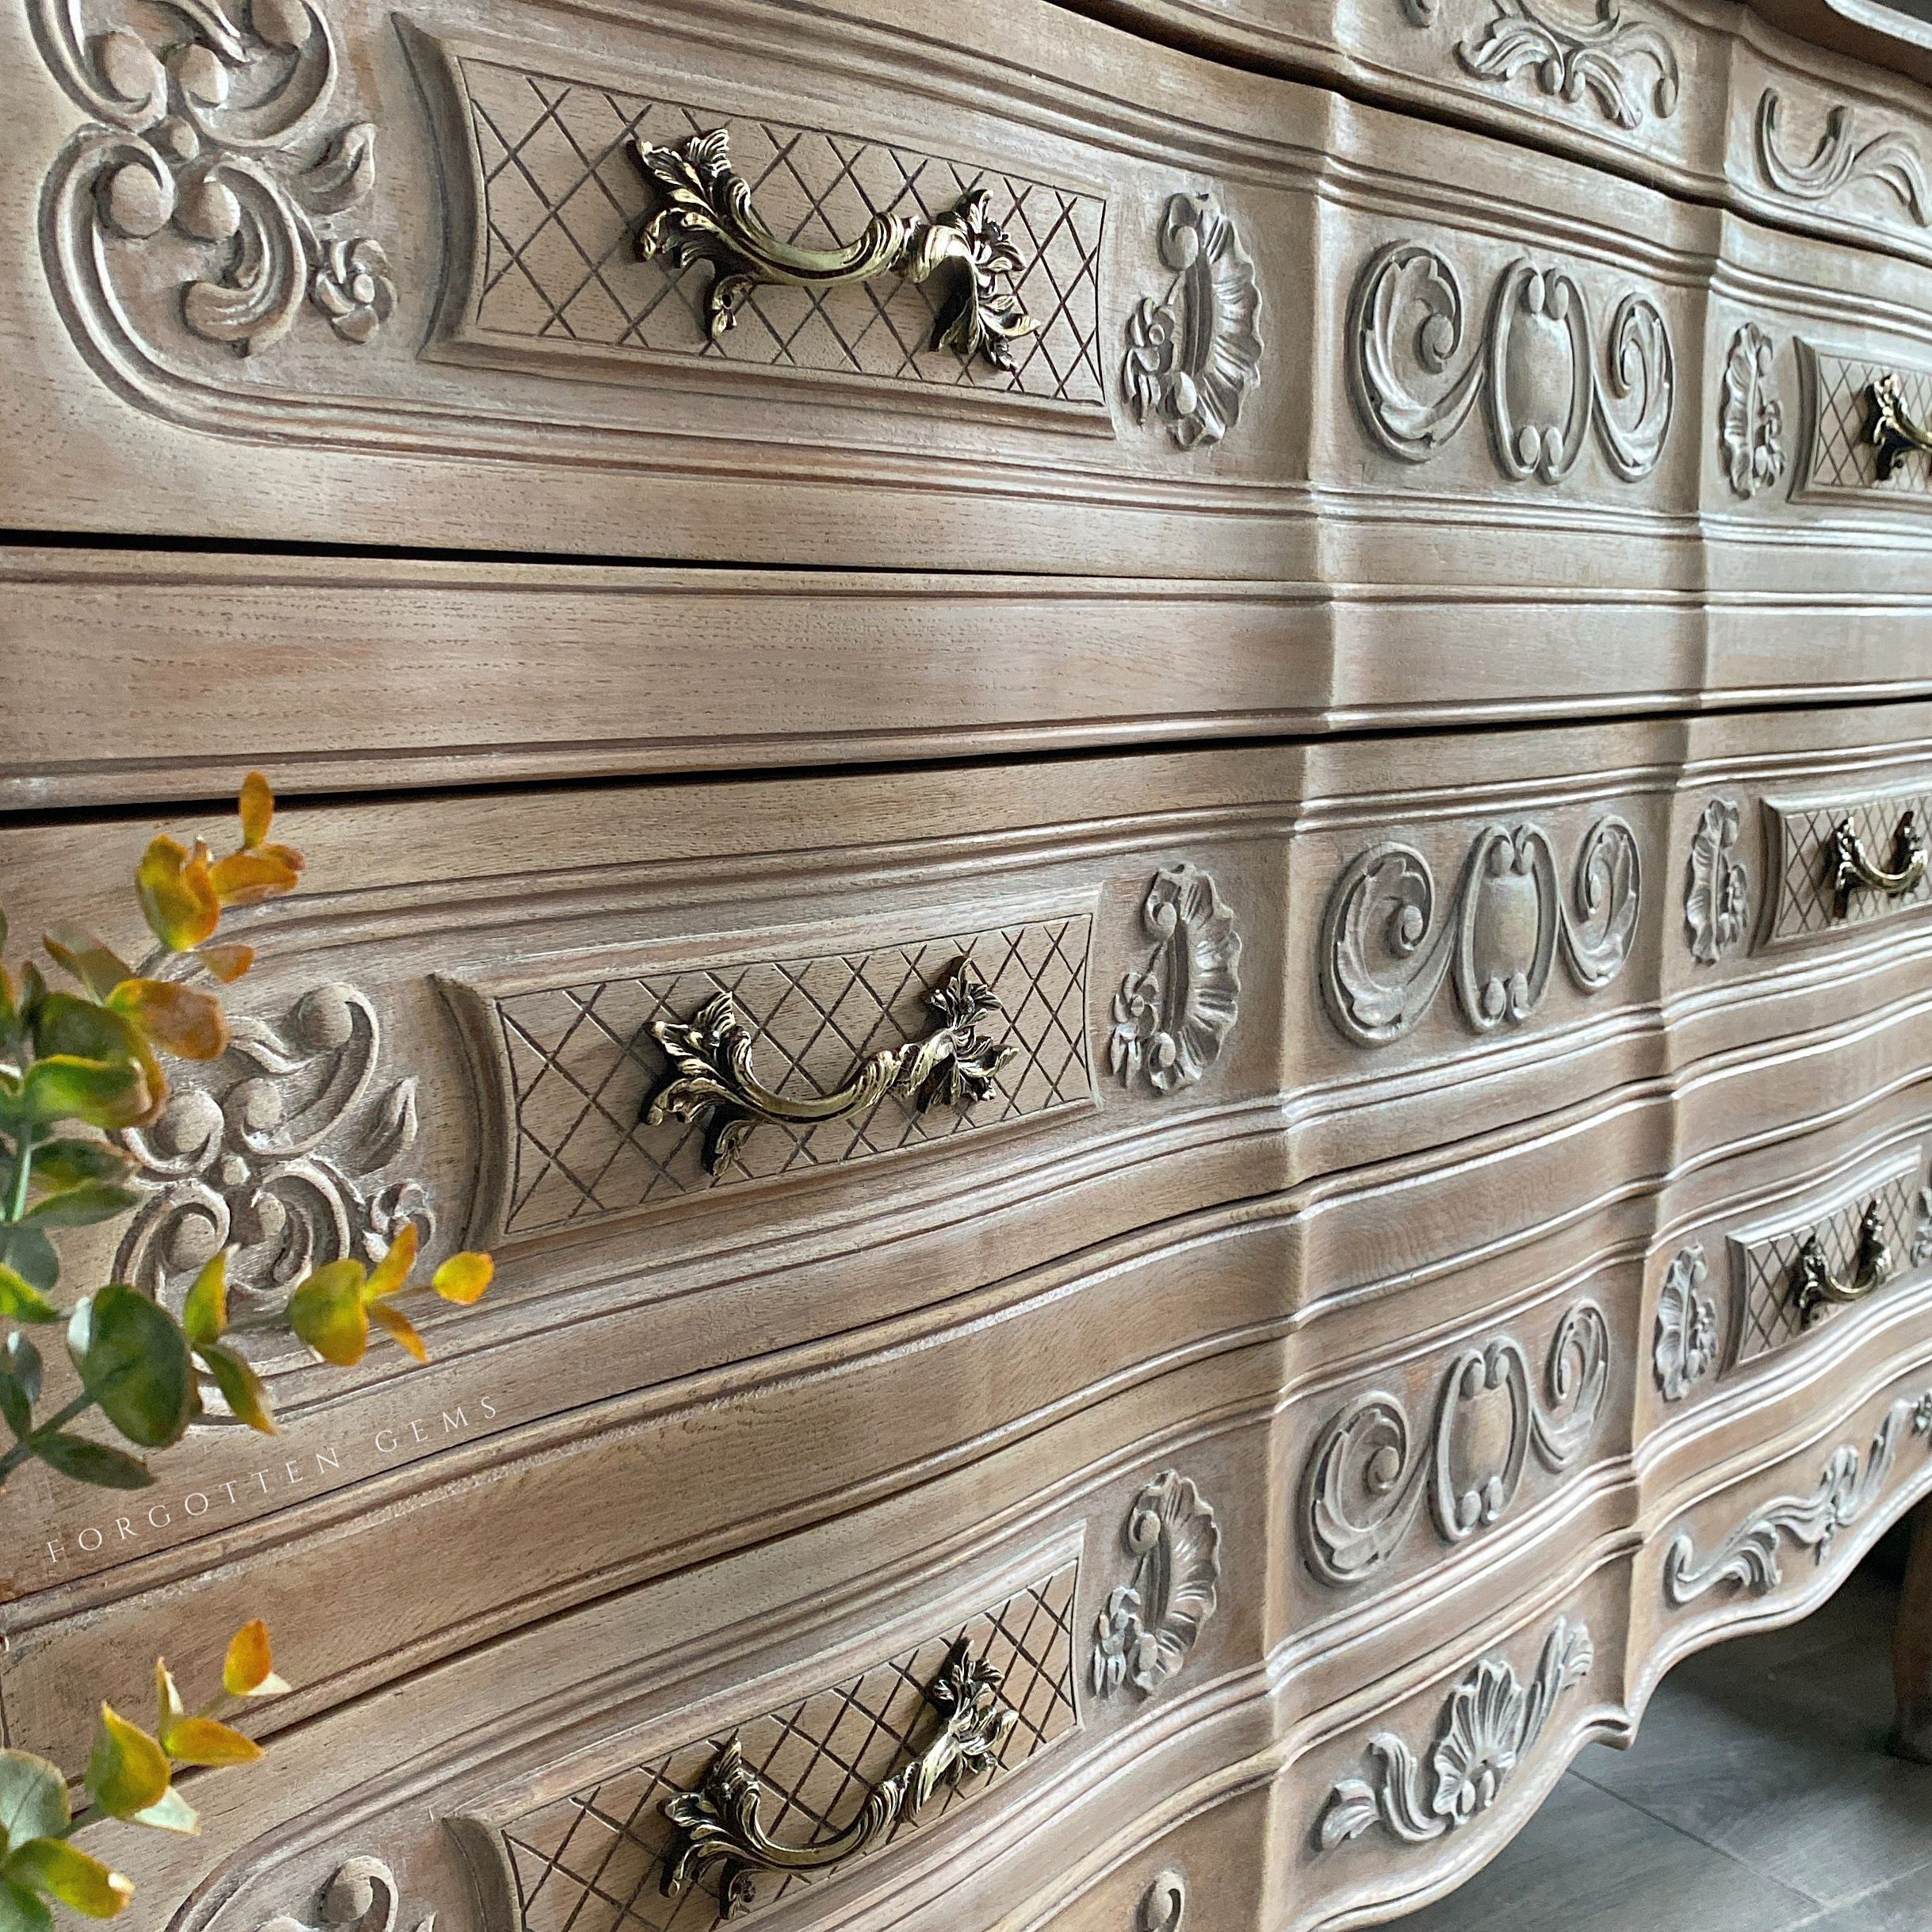 French Oak Drawers White Washed & White waxed for a